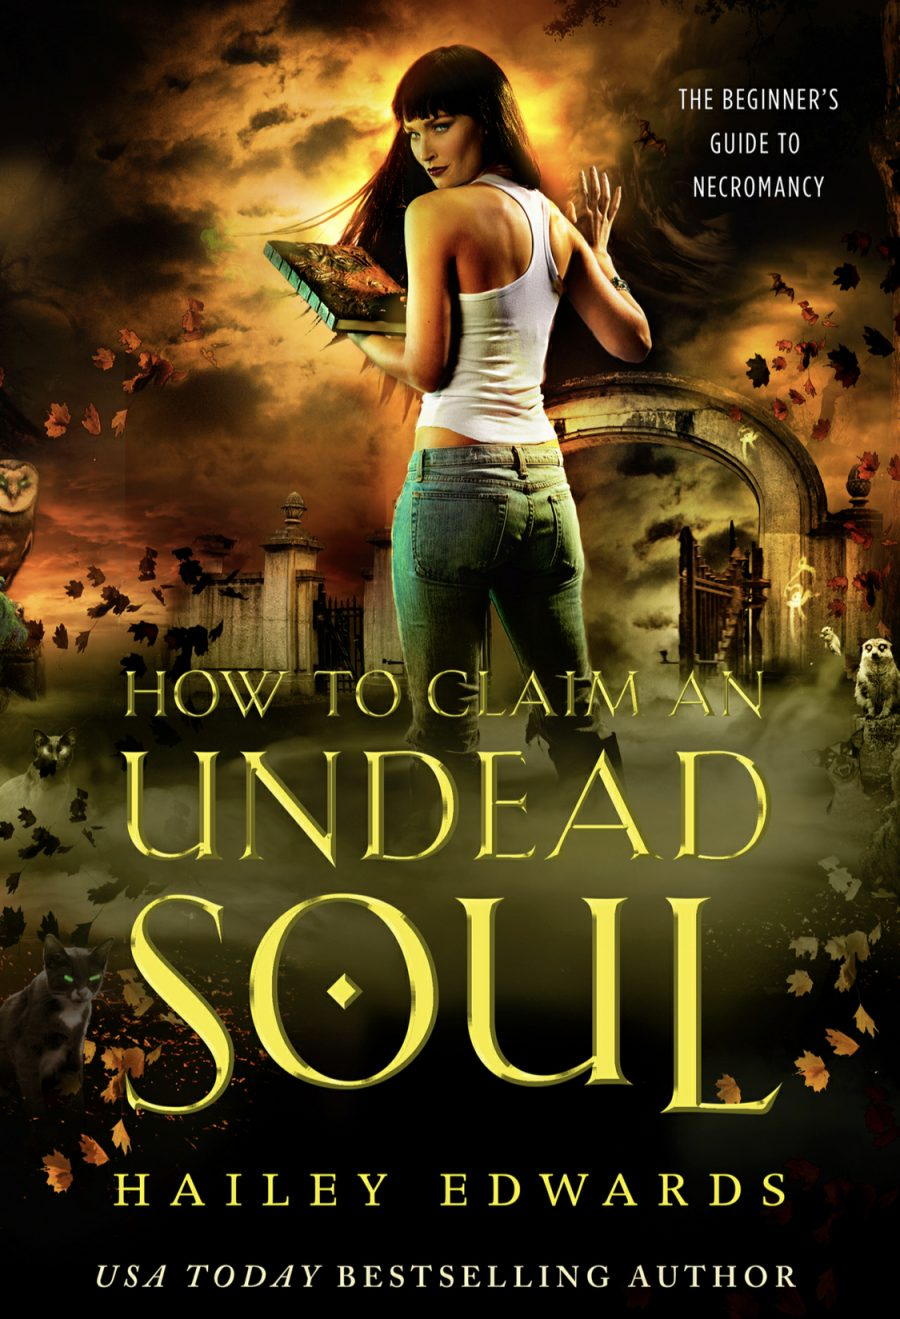 How to Claim an Undead Soul by Hailey Edwards - A Book Review #BookReview #Review #UrbanFantasy #UF #Vampires #Necromancers #Shifters #Series